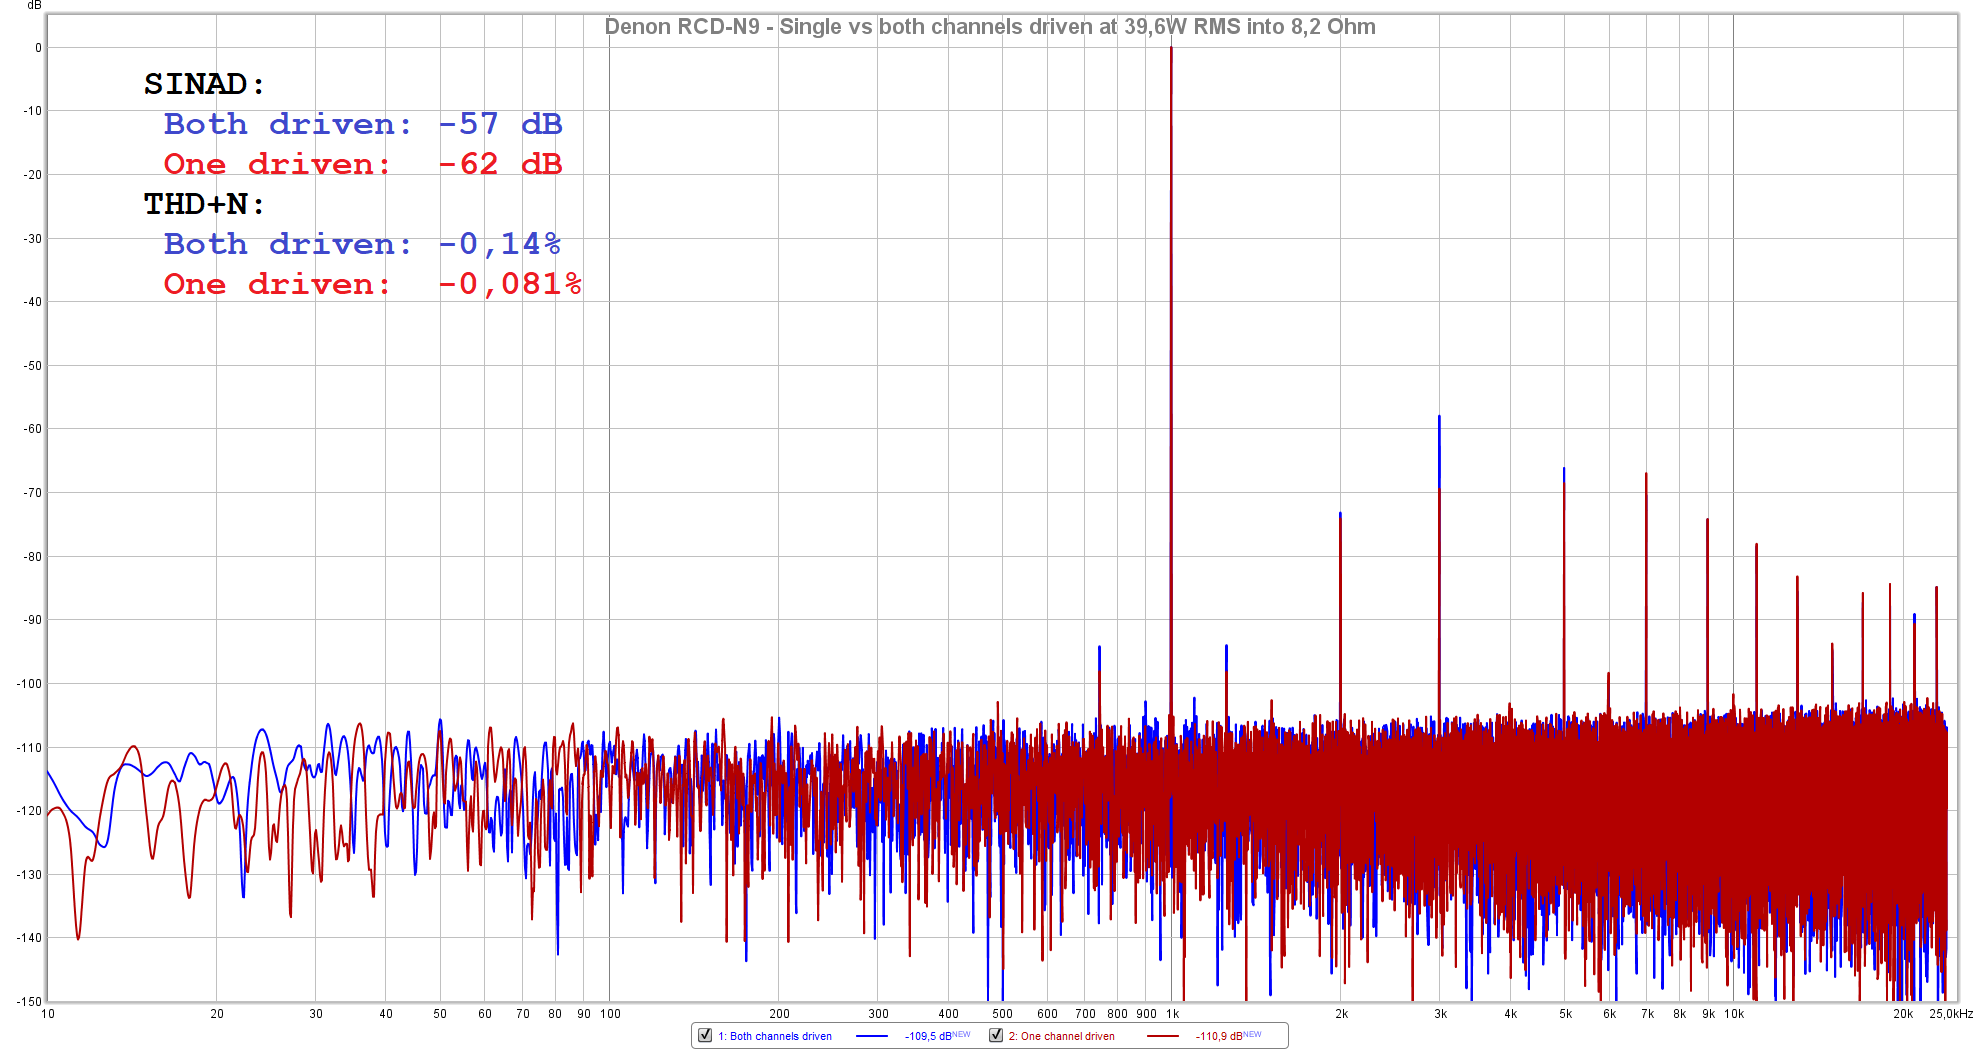 Denon RCD-N9 - Single vs both channels driven at 39,6W RMS into 8,2 Ohm.png